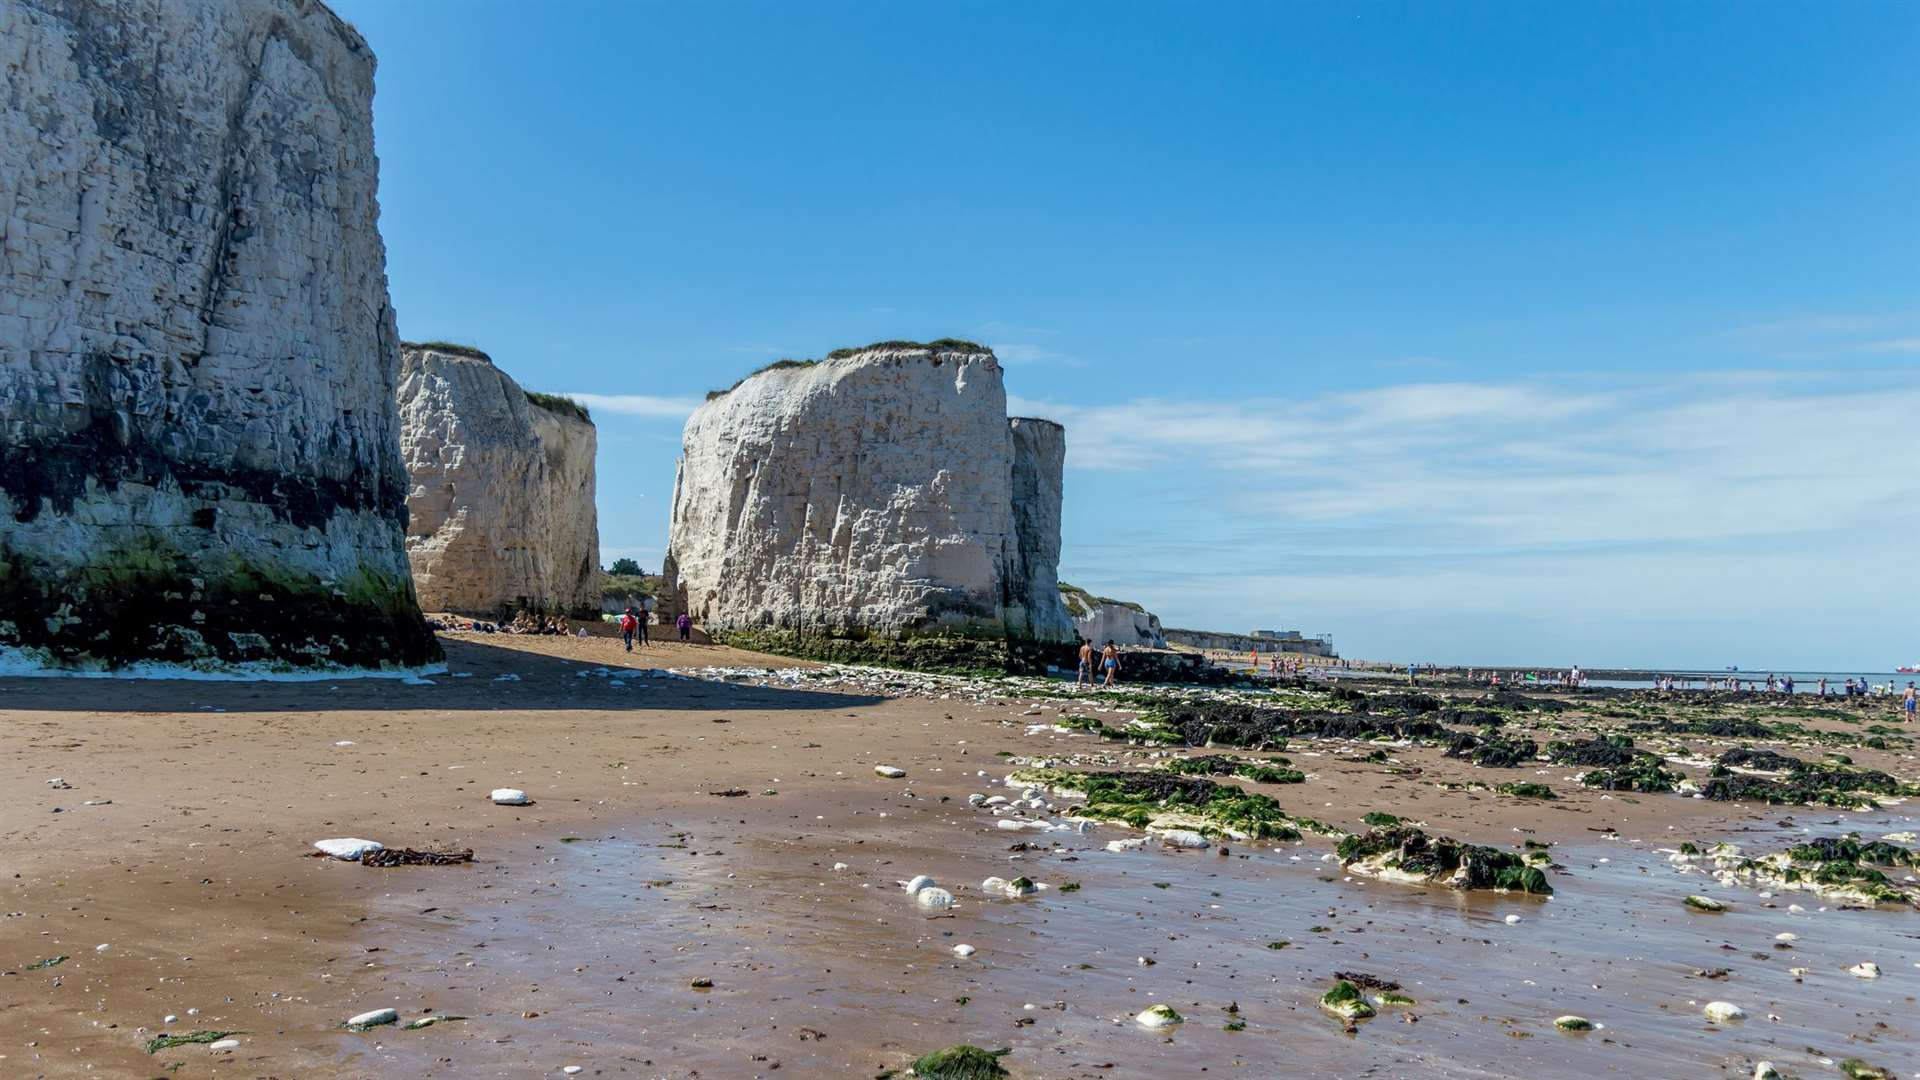 The rave, planned for Botany Bay, could spread infection and create a lot of litter and noise